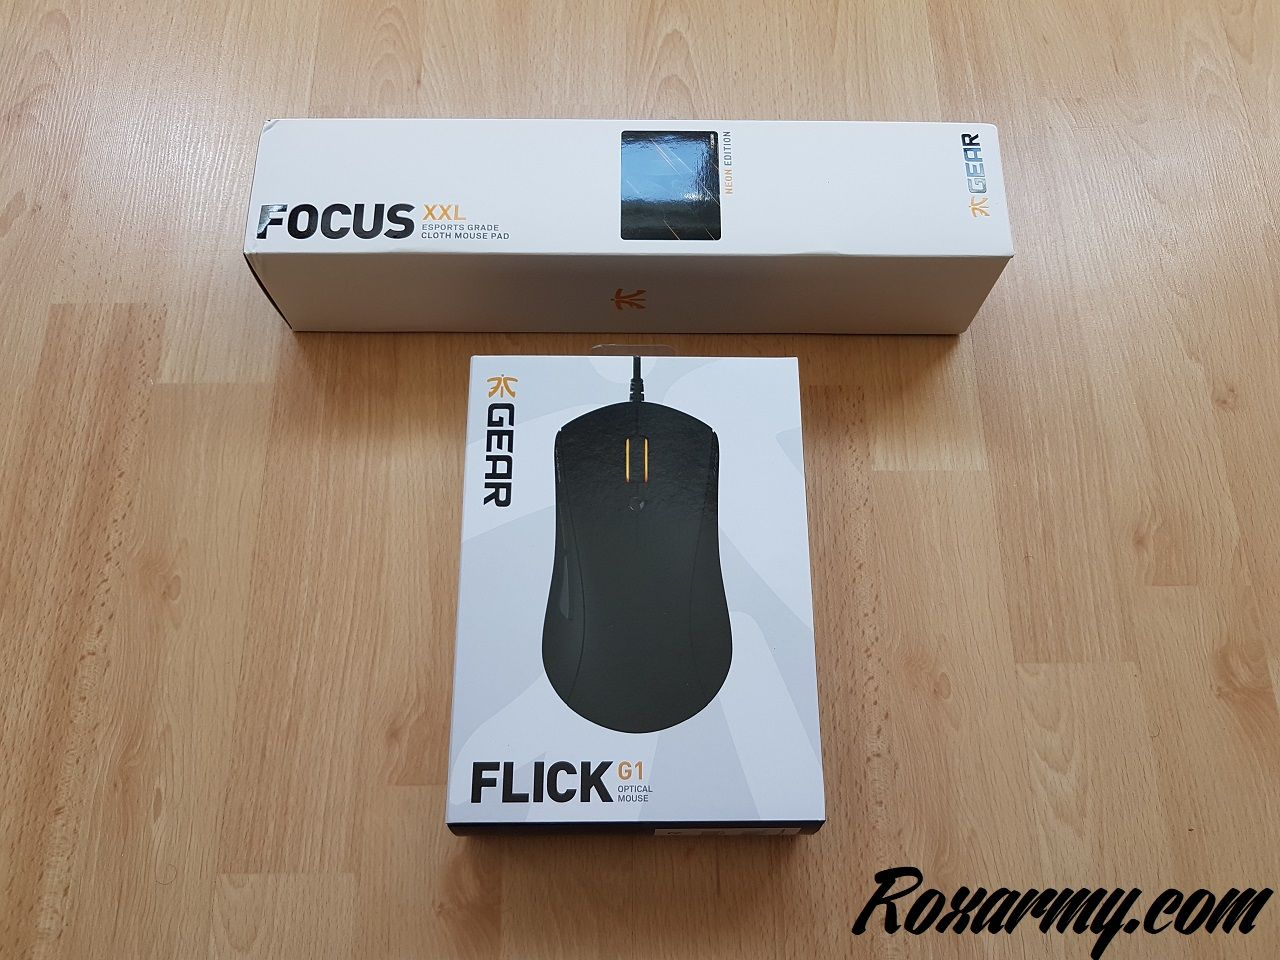 Flick G1 and Focus XXL